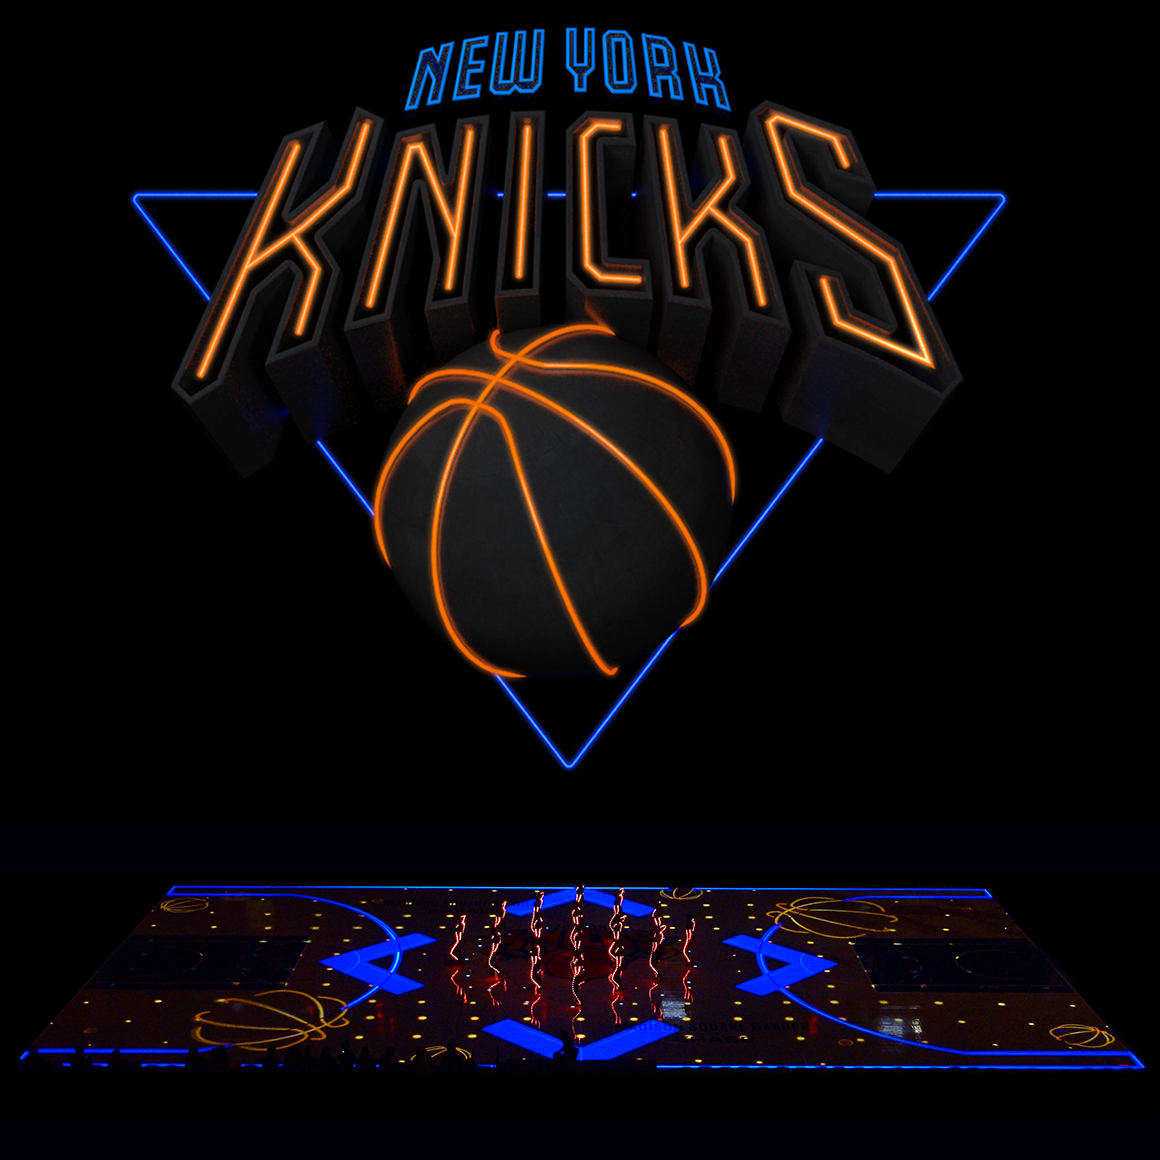 Madison Square Garden Knicks Projection Mapping 2016/17